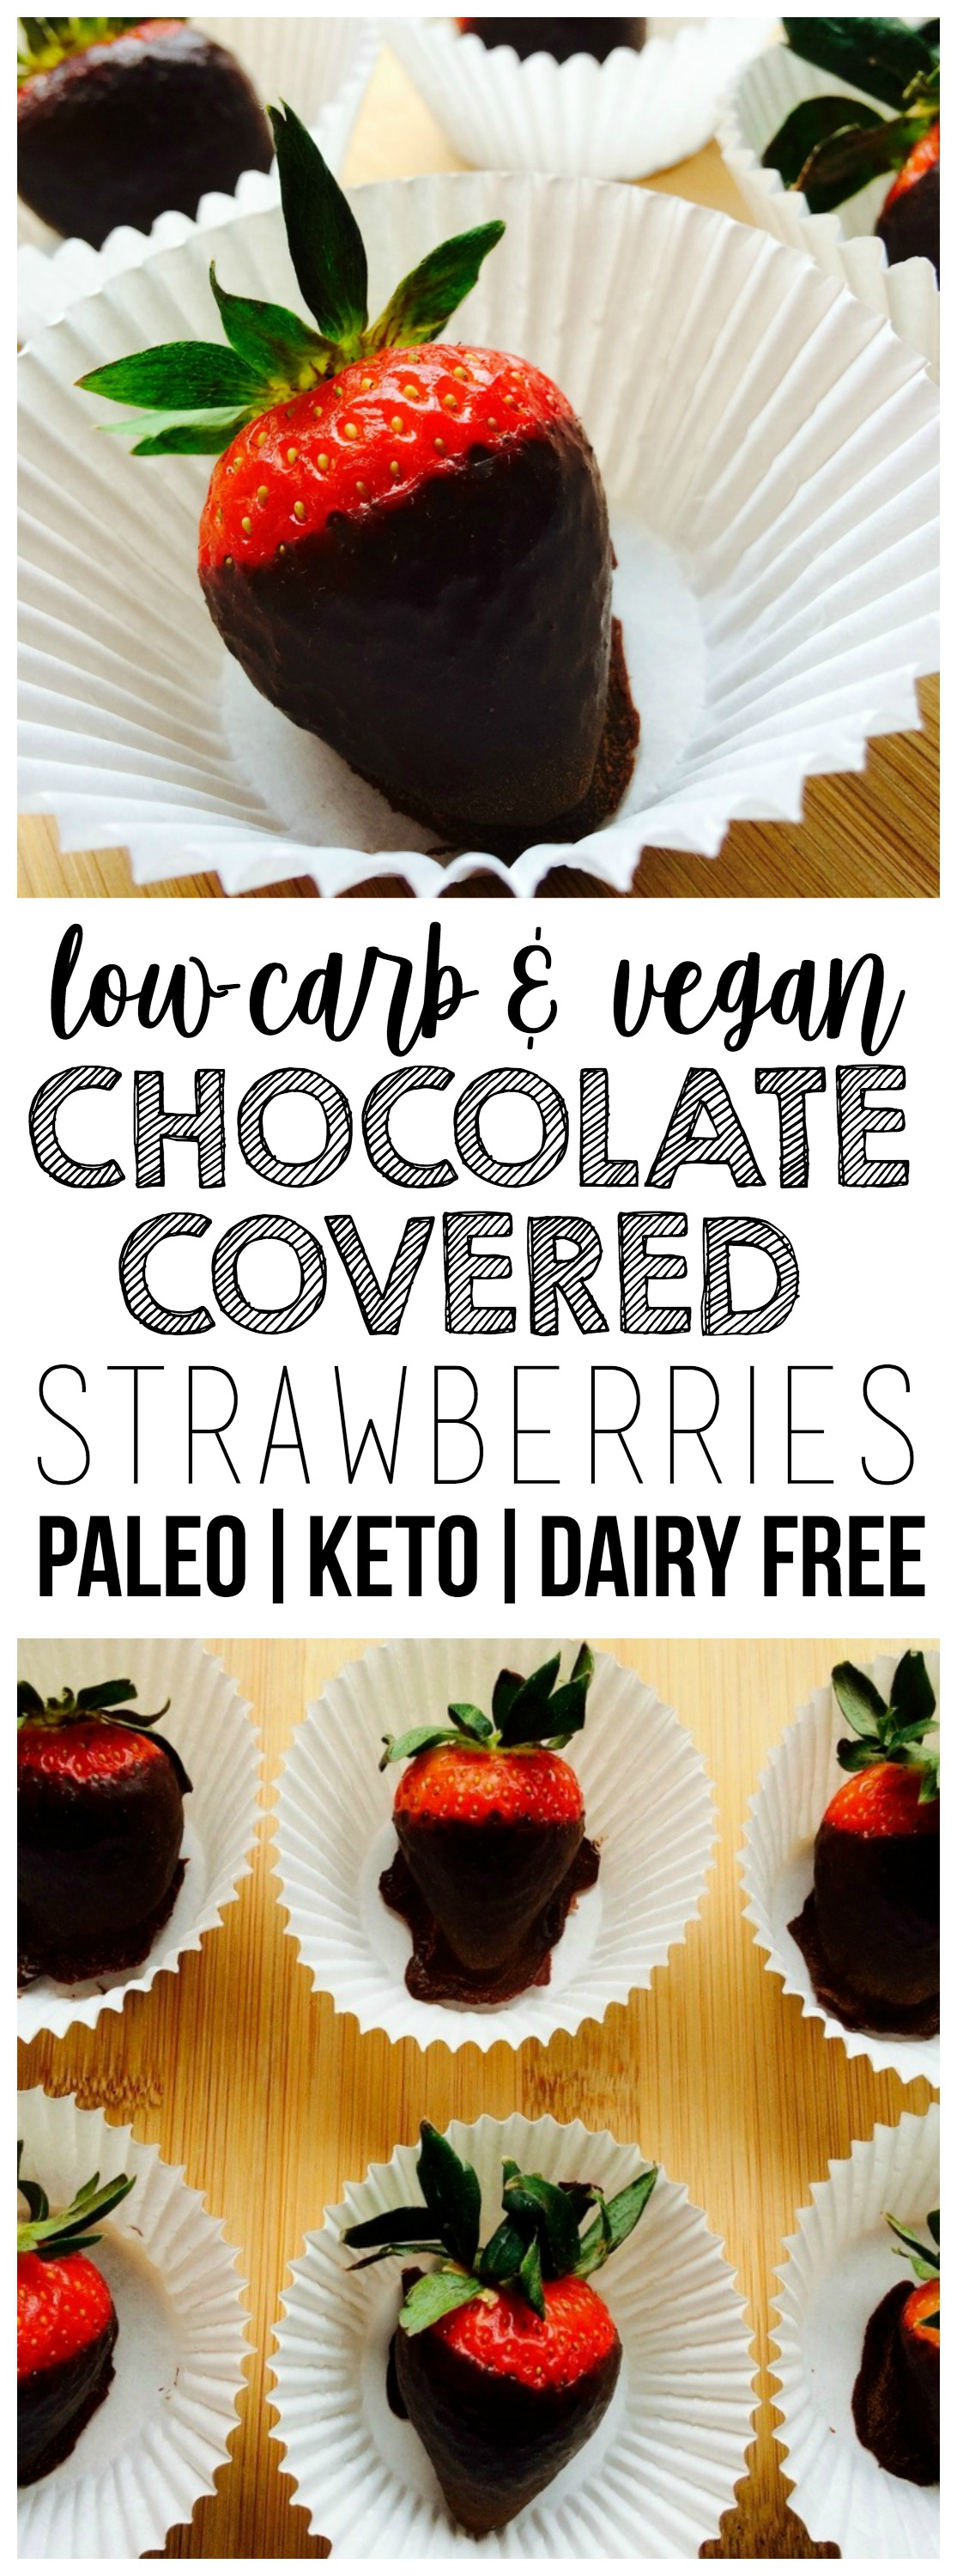 These healthy Keto Vegan Chocolate Covered Strawberries are absolutely divine!! Rich, chocolatey perfection. They are also gluten-free, low-carb, dairy-free, paleo, and contain no added sugar.